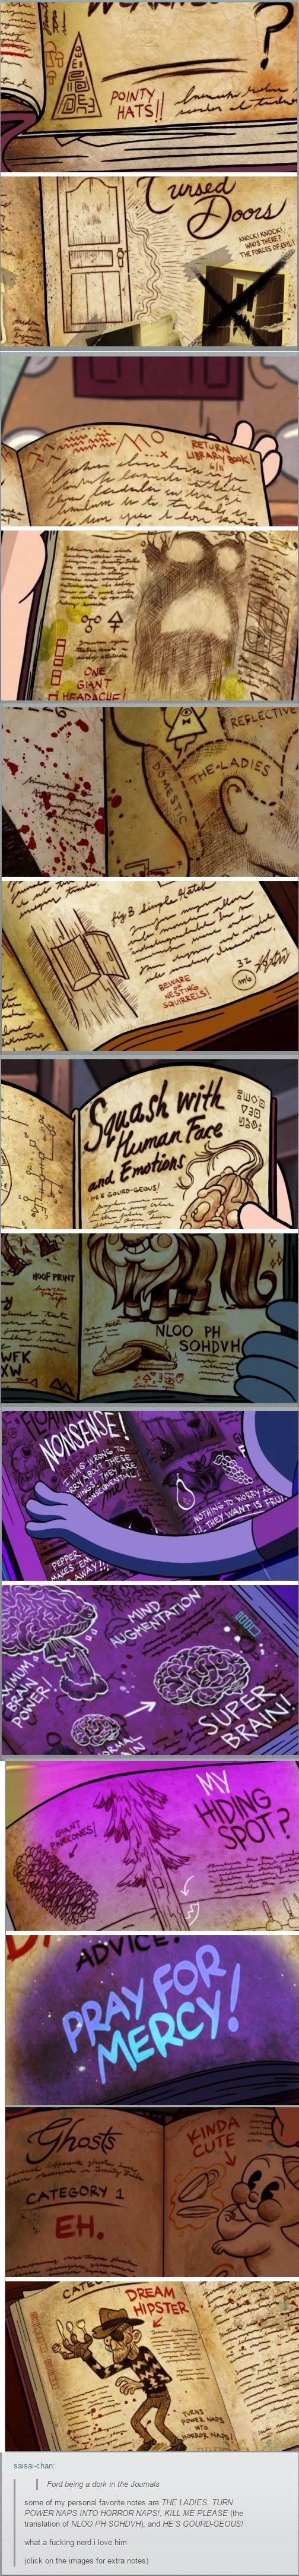 The proof that the author was funny was always on his journals (go to the link and check the aditoinal notes, they are hilarious) #GravityFalls #Ford